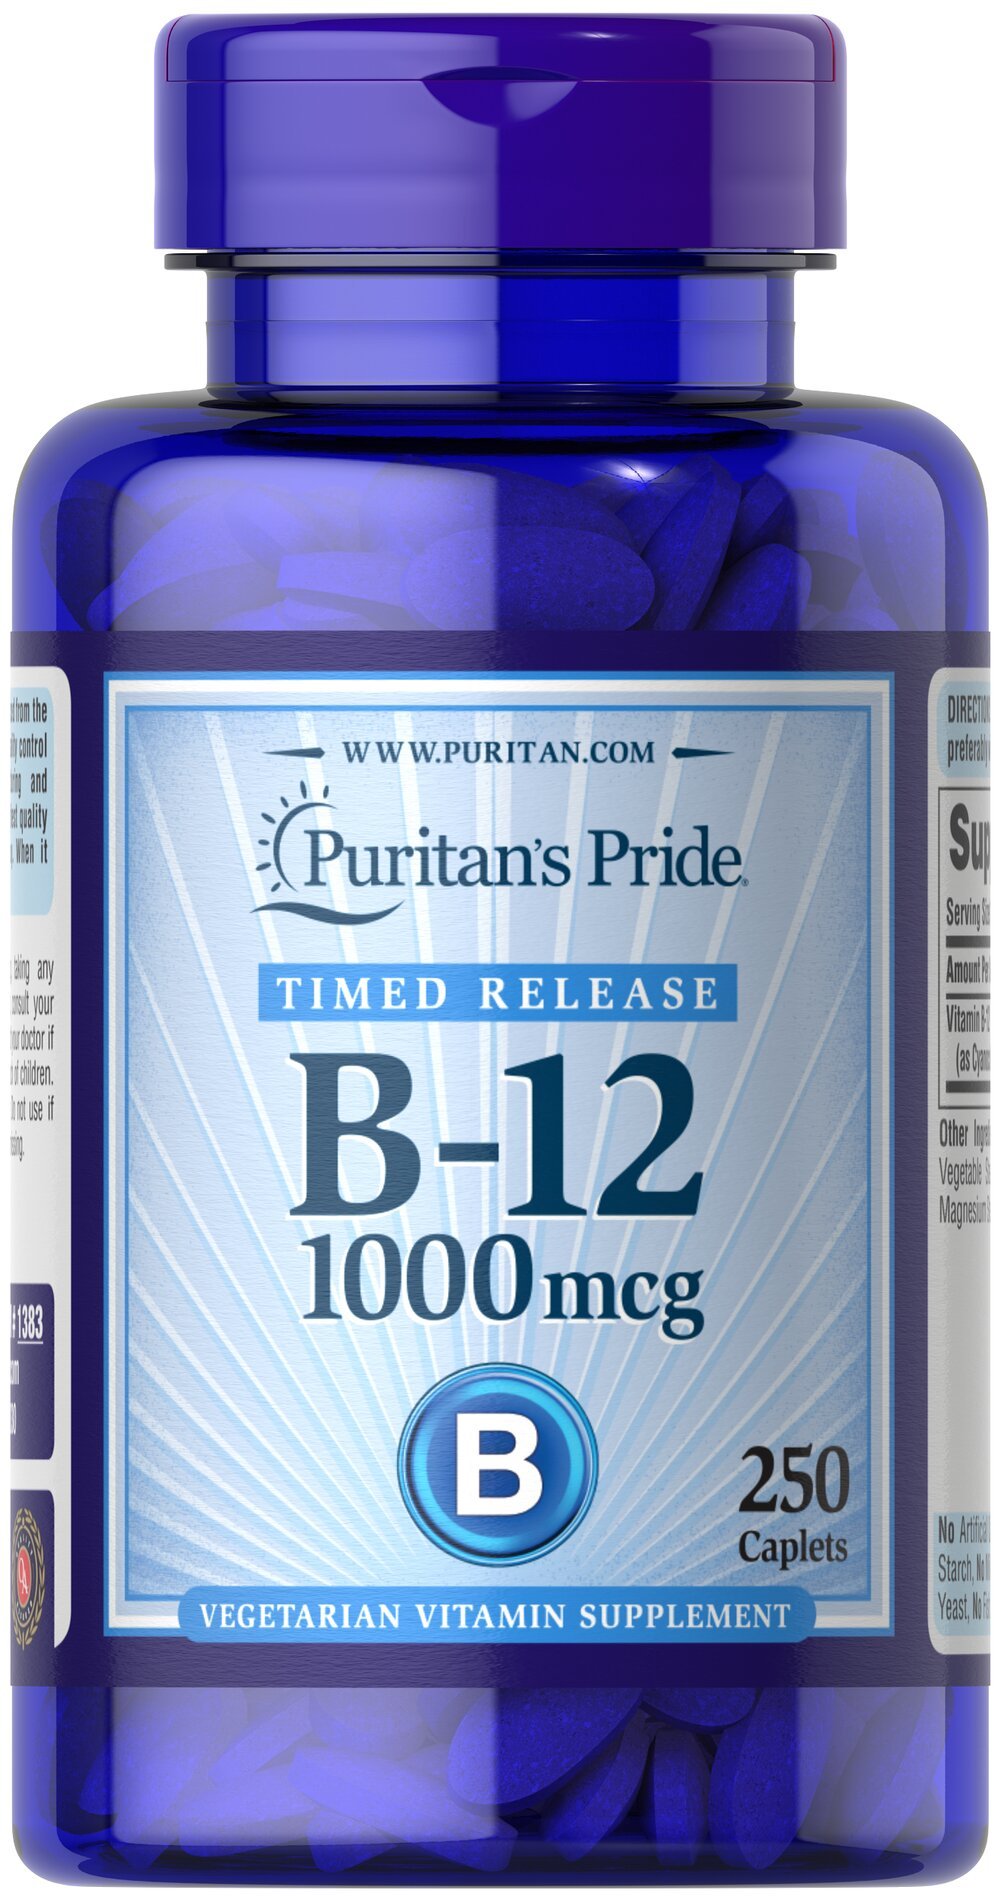 "Vitamin B-12 1000 mcg Timed Release <p>Our B-12 formula delivers essential <strong>B vitamins</strong> for energy metabolism in the body.**<strong>Vitamin B-12</strong> is also essential for the normal formation of blood cells, contributes to the health of the nervous system, and helps maintain circulatory health.** B-12 also plays a role in keeping your gums and mouth healthy<span style=""font-size:12.0pt;font-family:Cambria;"">.** </span>    Go"